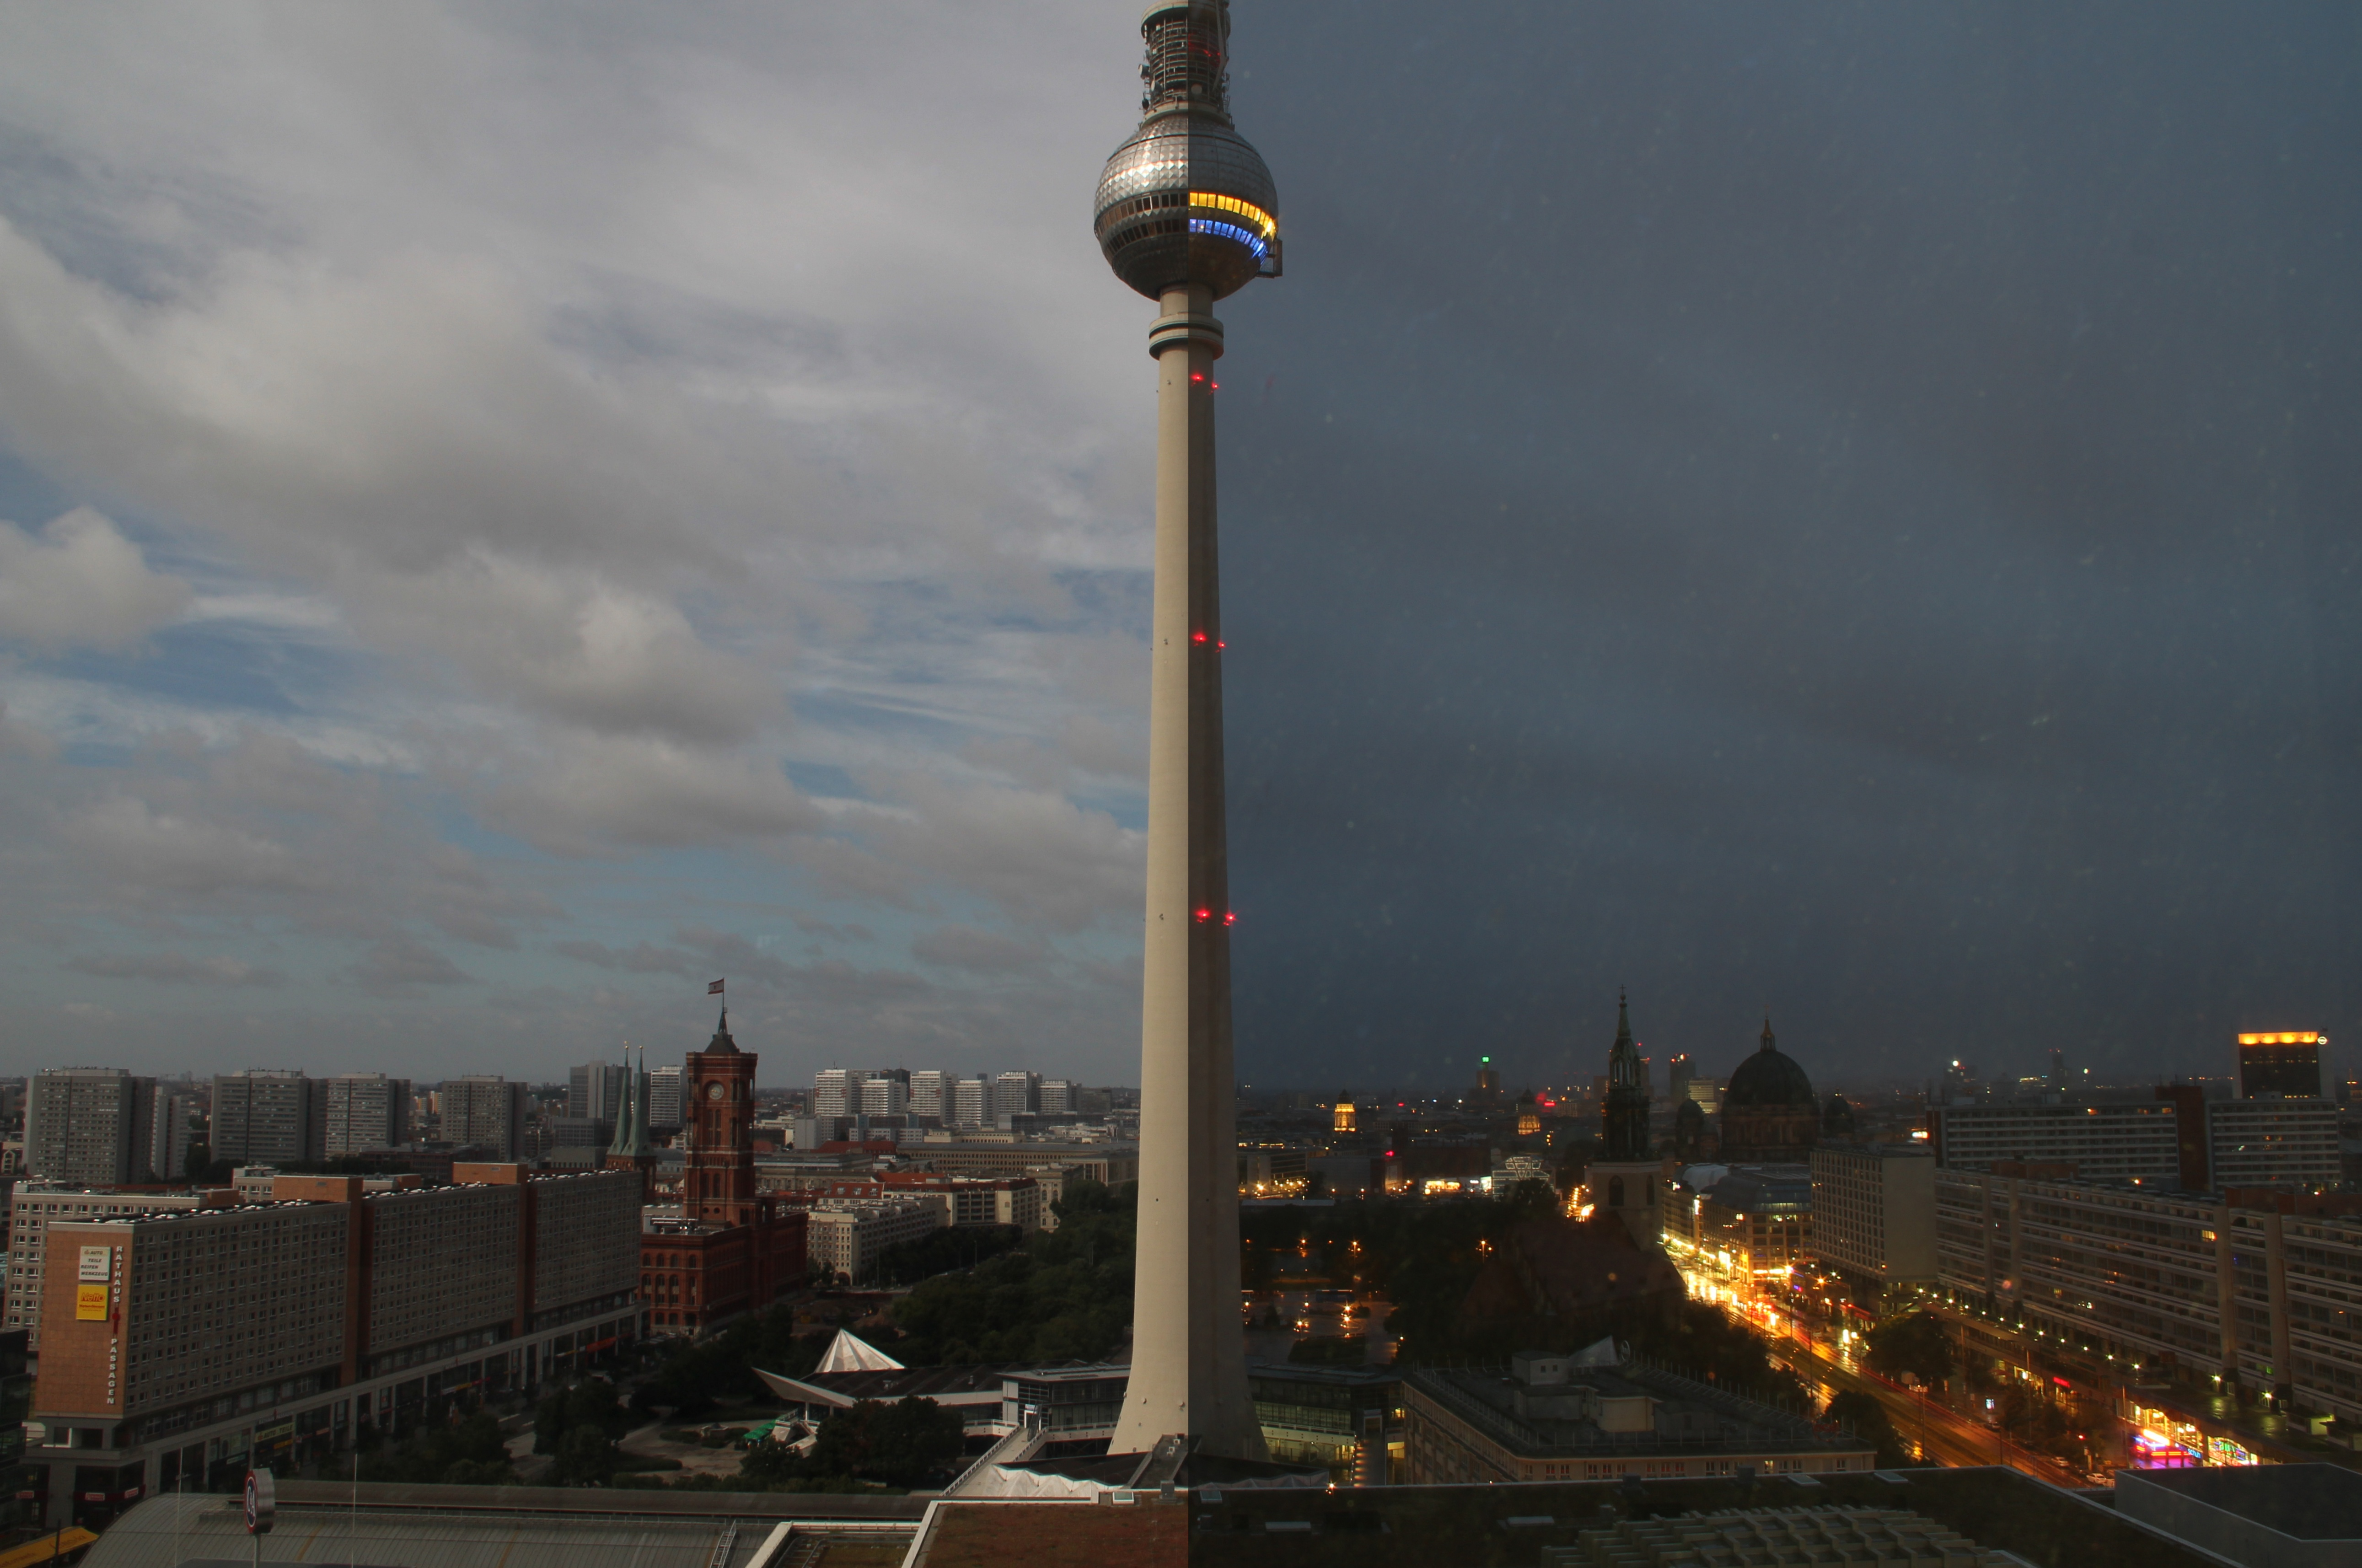 The 'Fernsehturm' of Berlin on the left side by day and the right side by night